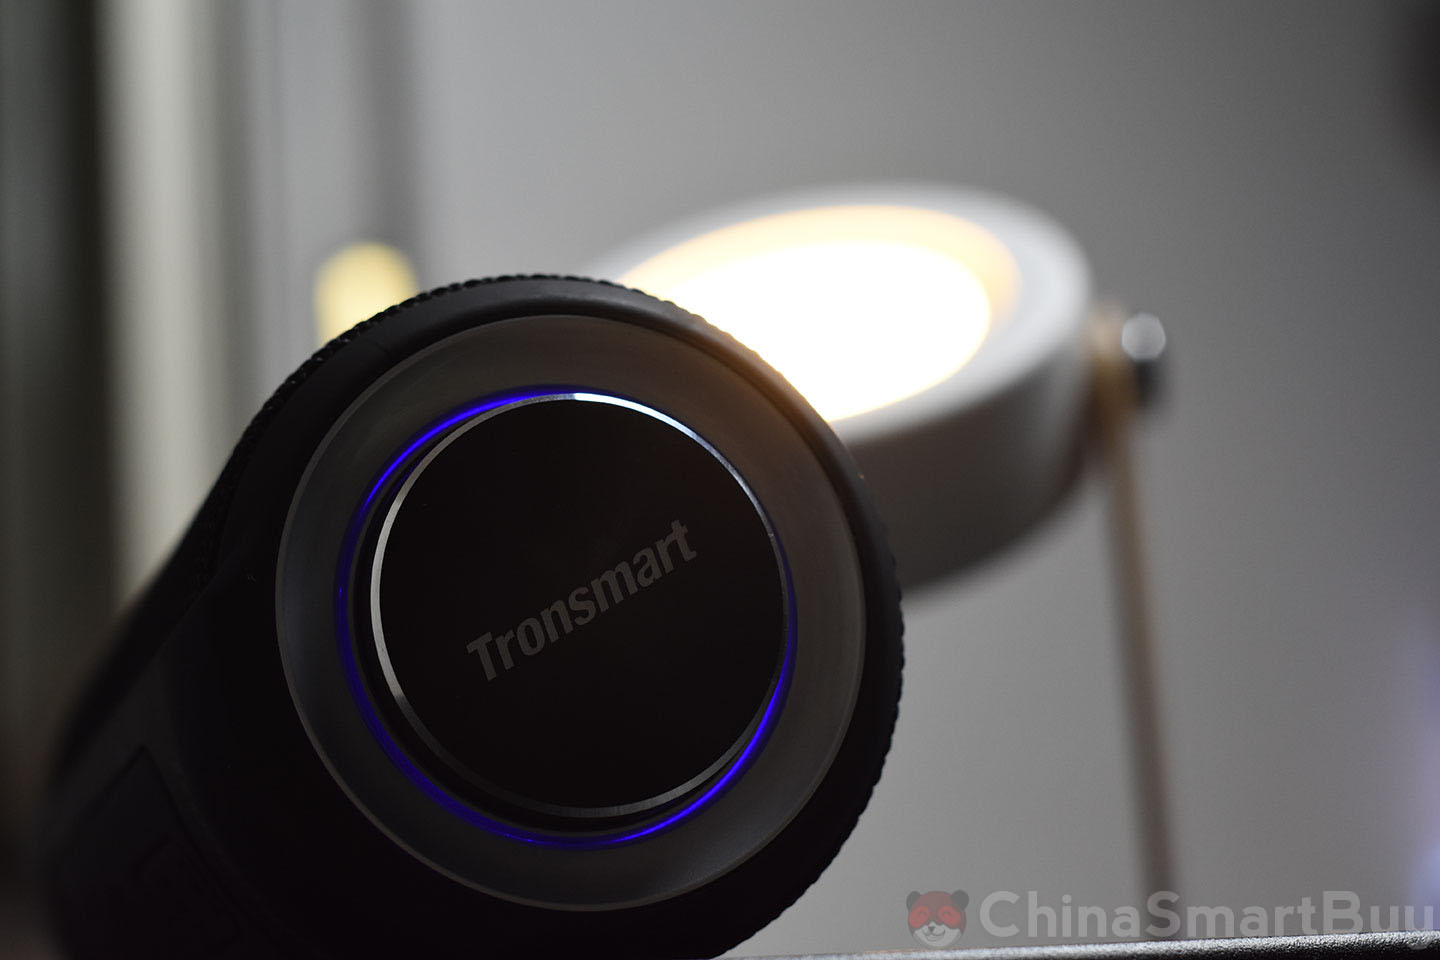 Tronsmart Element T6 Plus fa tremare le pareti di casa (o quasi)!